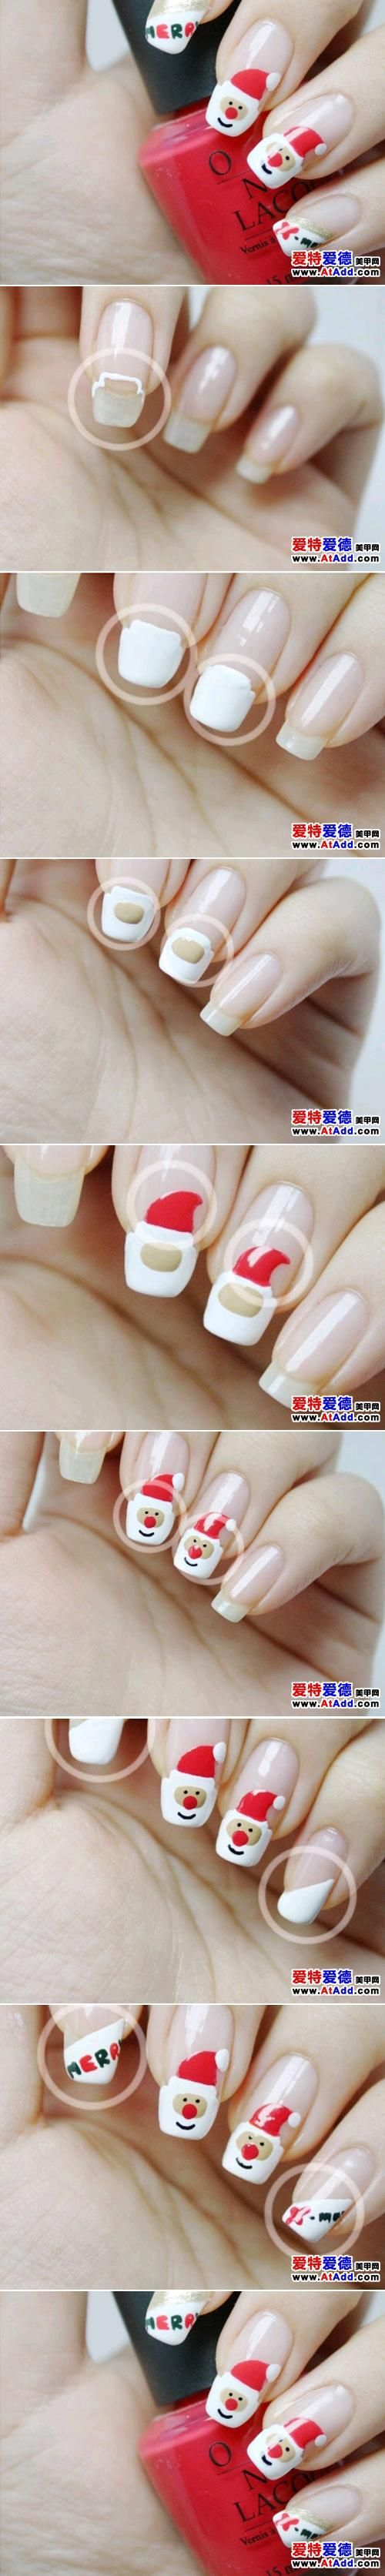 1012 best nail art images on Pinterest | Cute nails, Nail art and ...